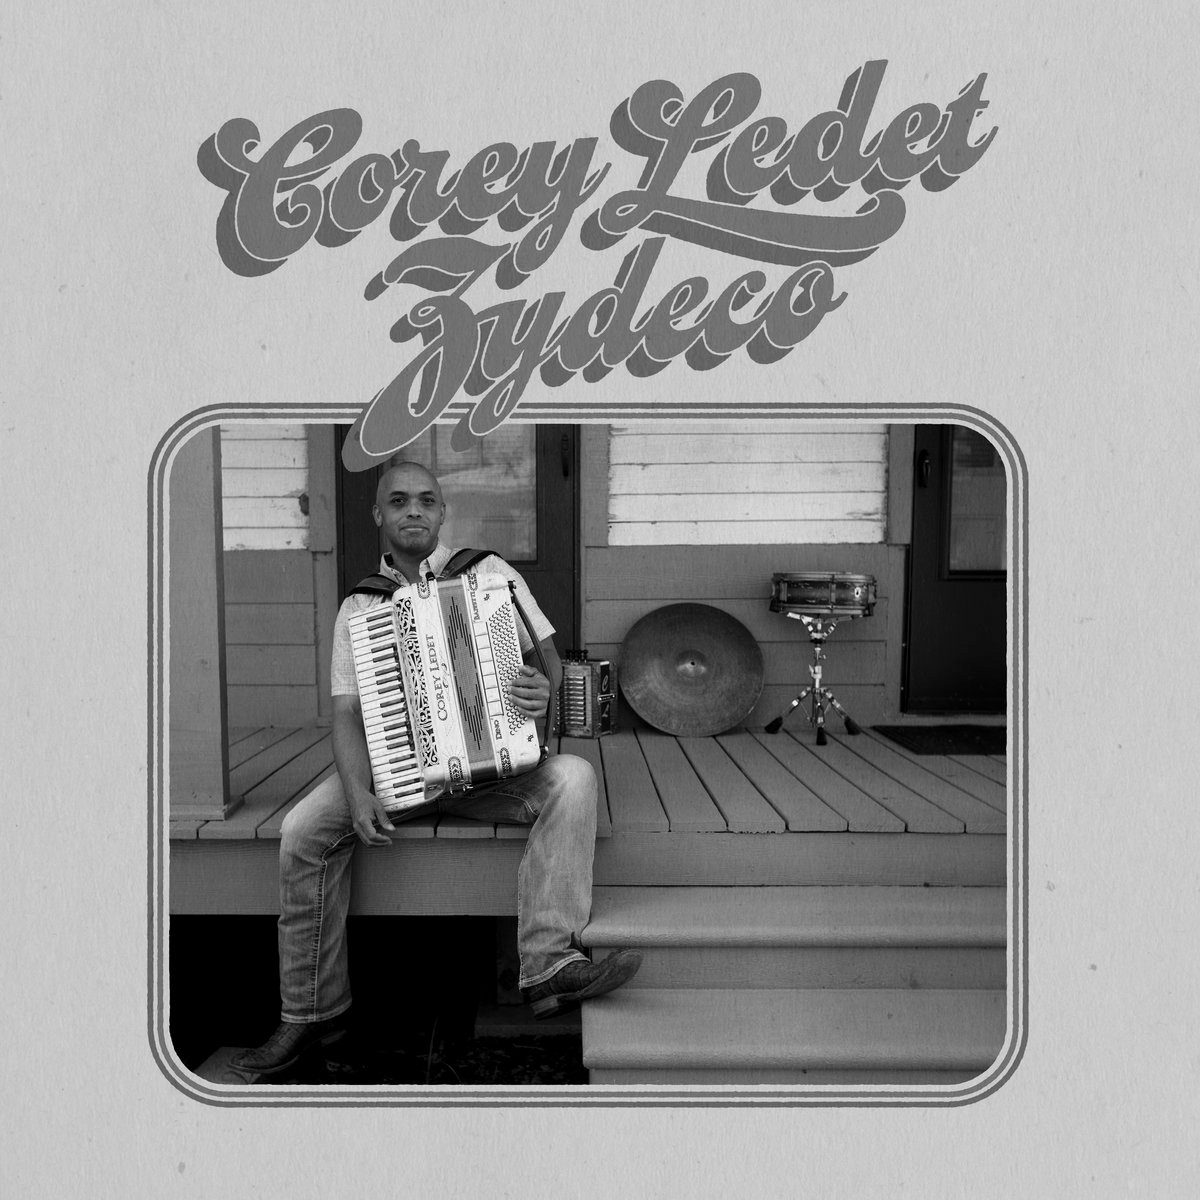 """Album cover for Corey Ledet Zydeco's self-titled album. It's a black and white photo of him sitting on a wooden porch with an accordion on his lap. He's dark-skinned and looking straight at the camera, and his foot is resting on one of the stairs. There are some drums and cymbals leaning up against the wooden panels of the building behind him. At the top reads """"Corey Ledet Zydeco"""" is a retro font."""